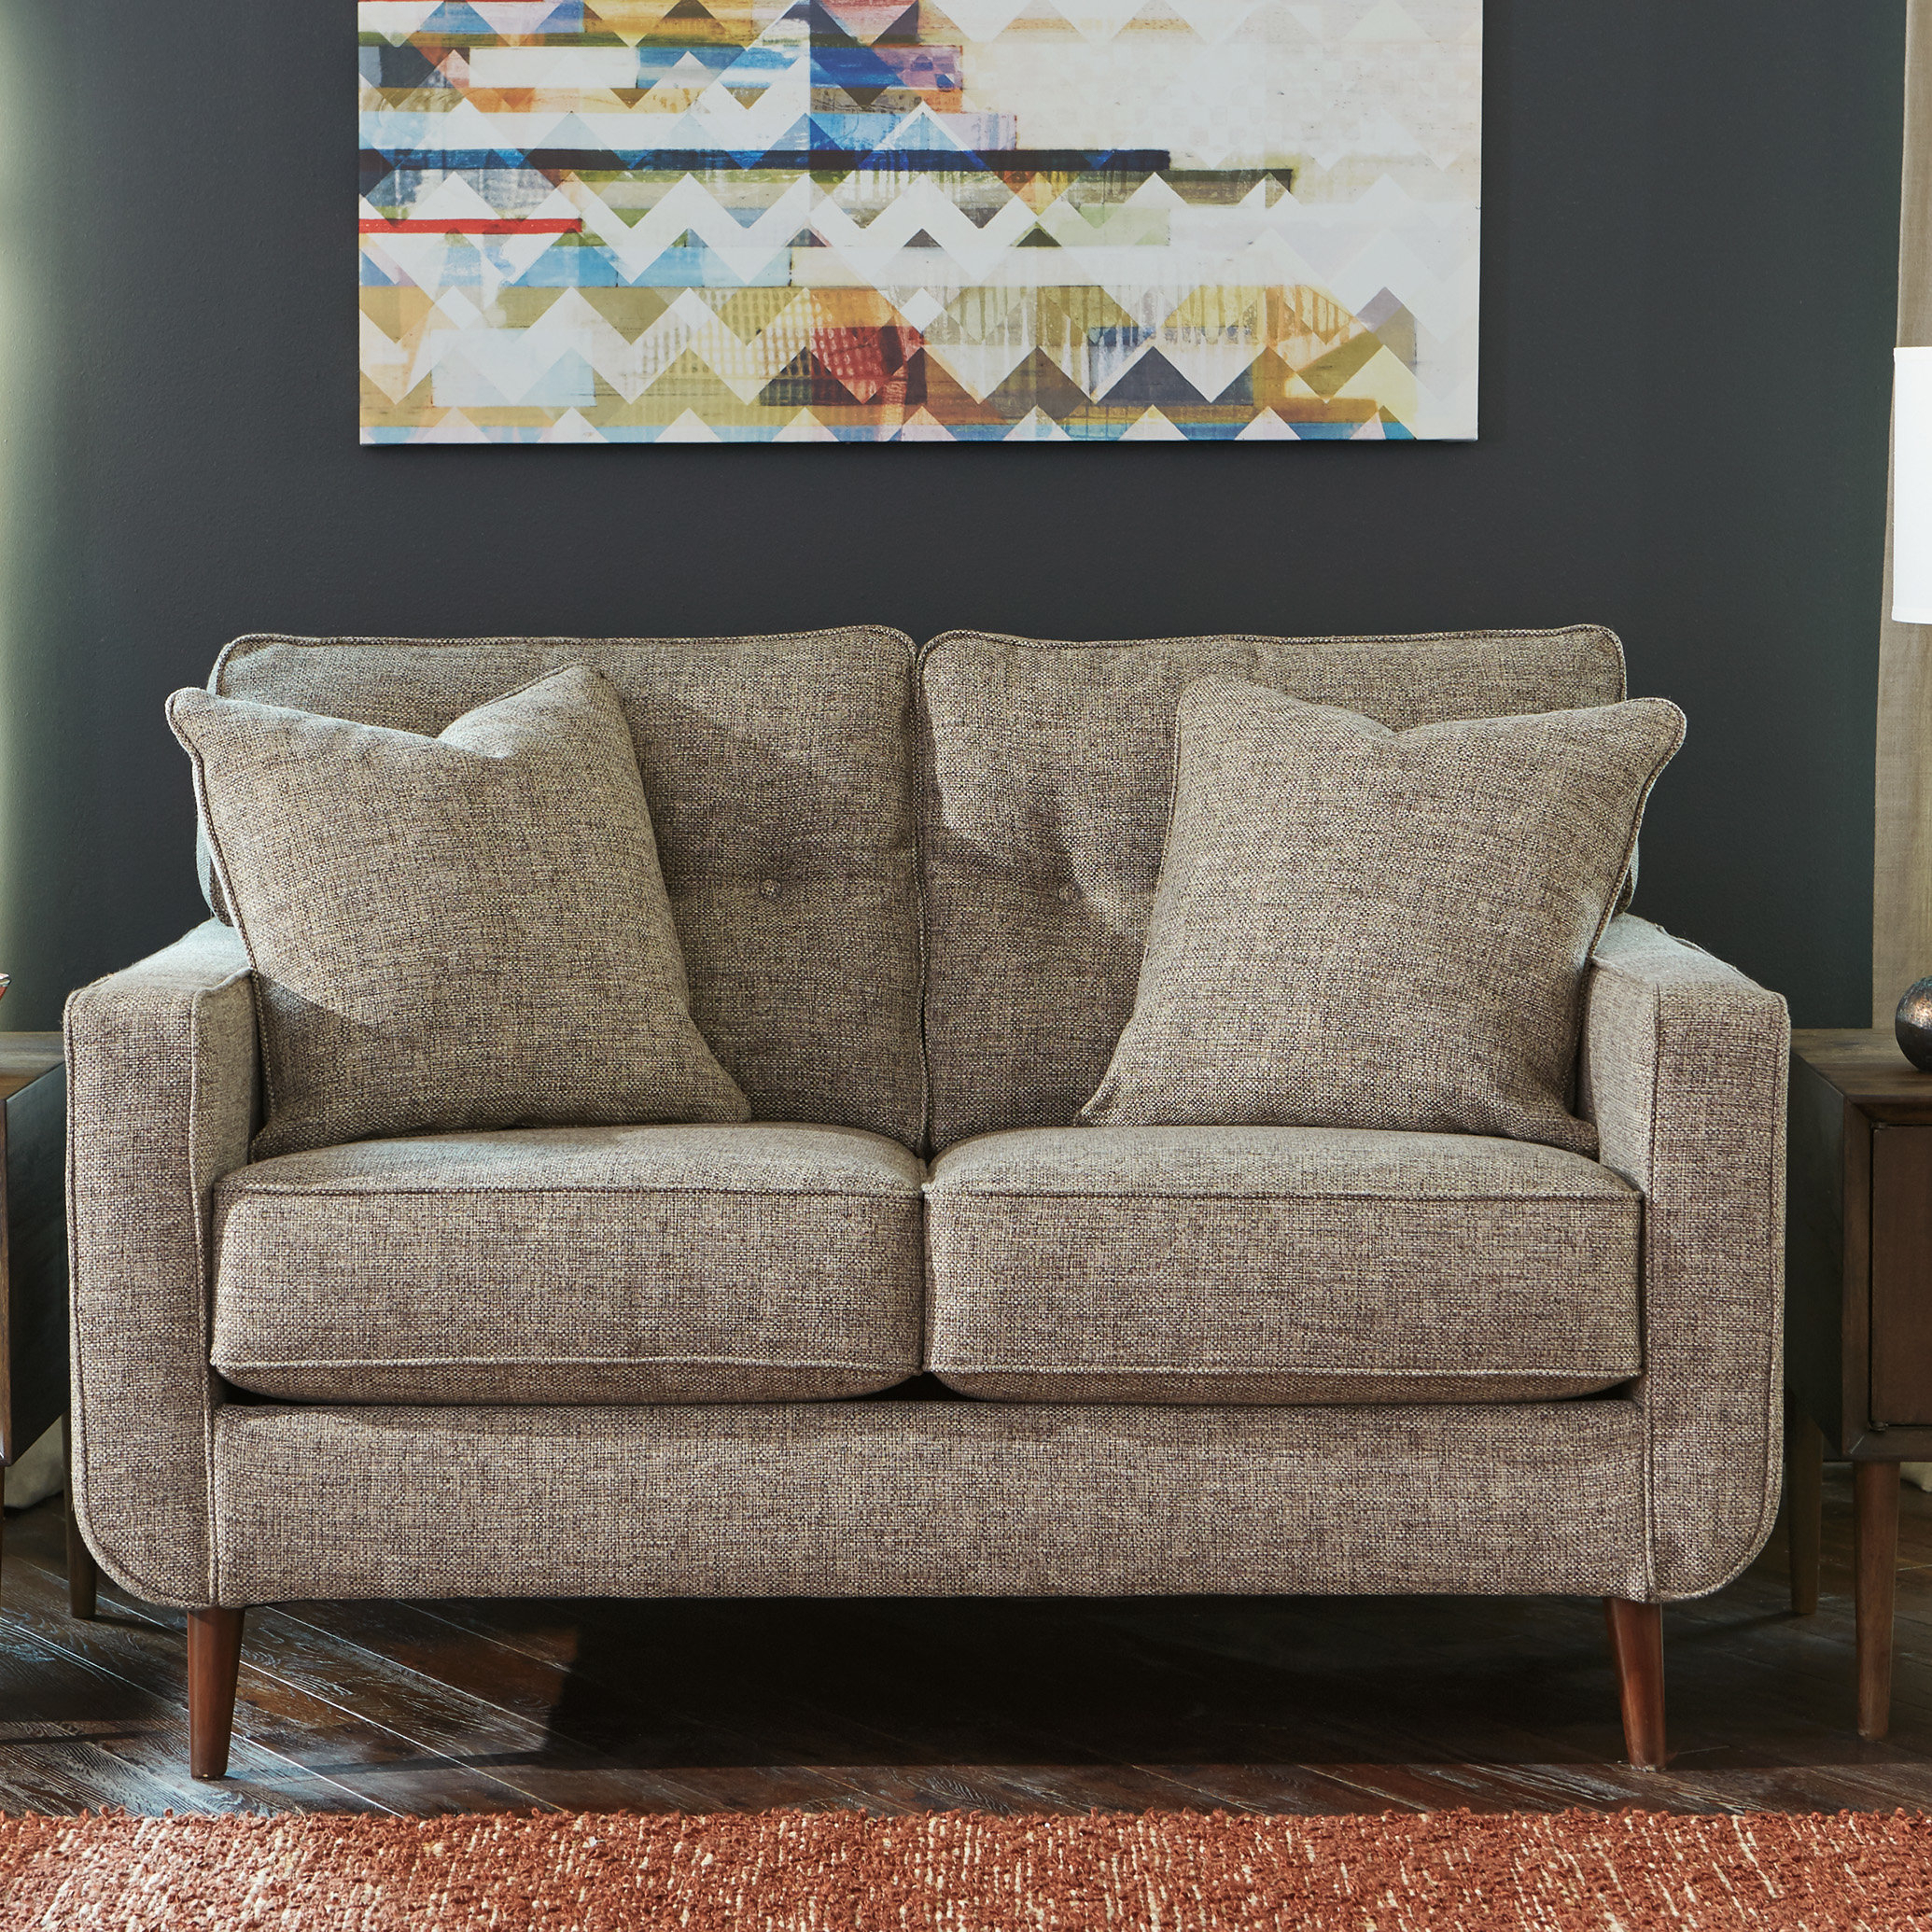 Bungalow Rose Grandin Loveseat | Birch Lane Regarding Grandin Leather Sofa Chairs (Image 5 of 20)